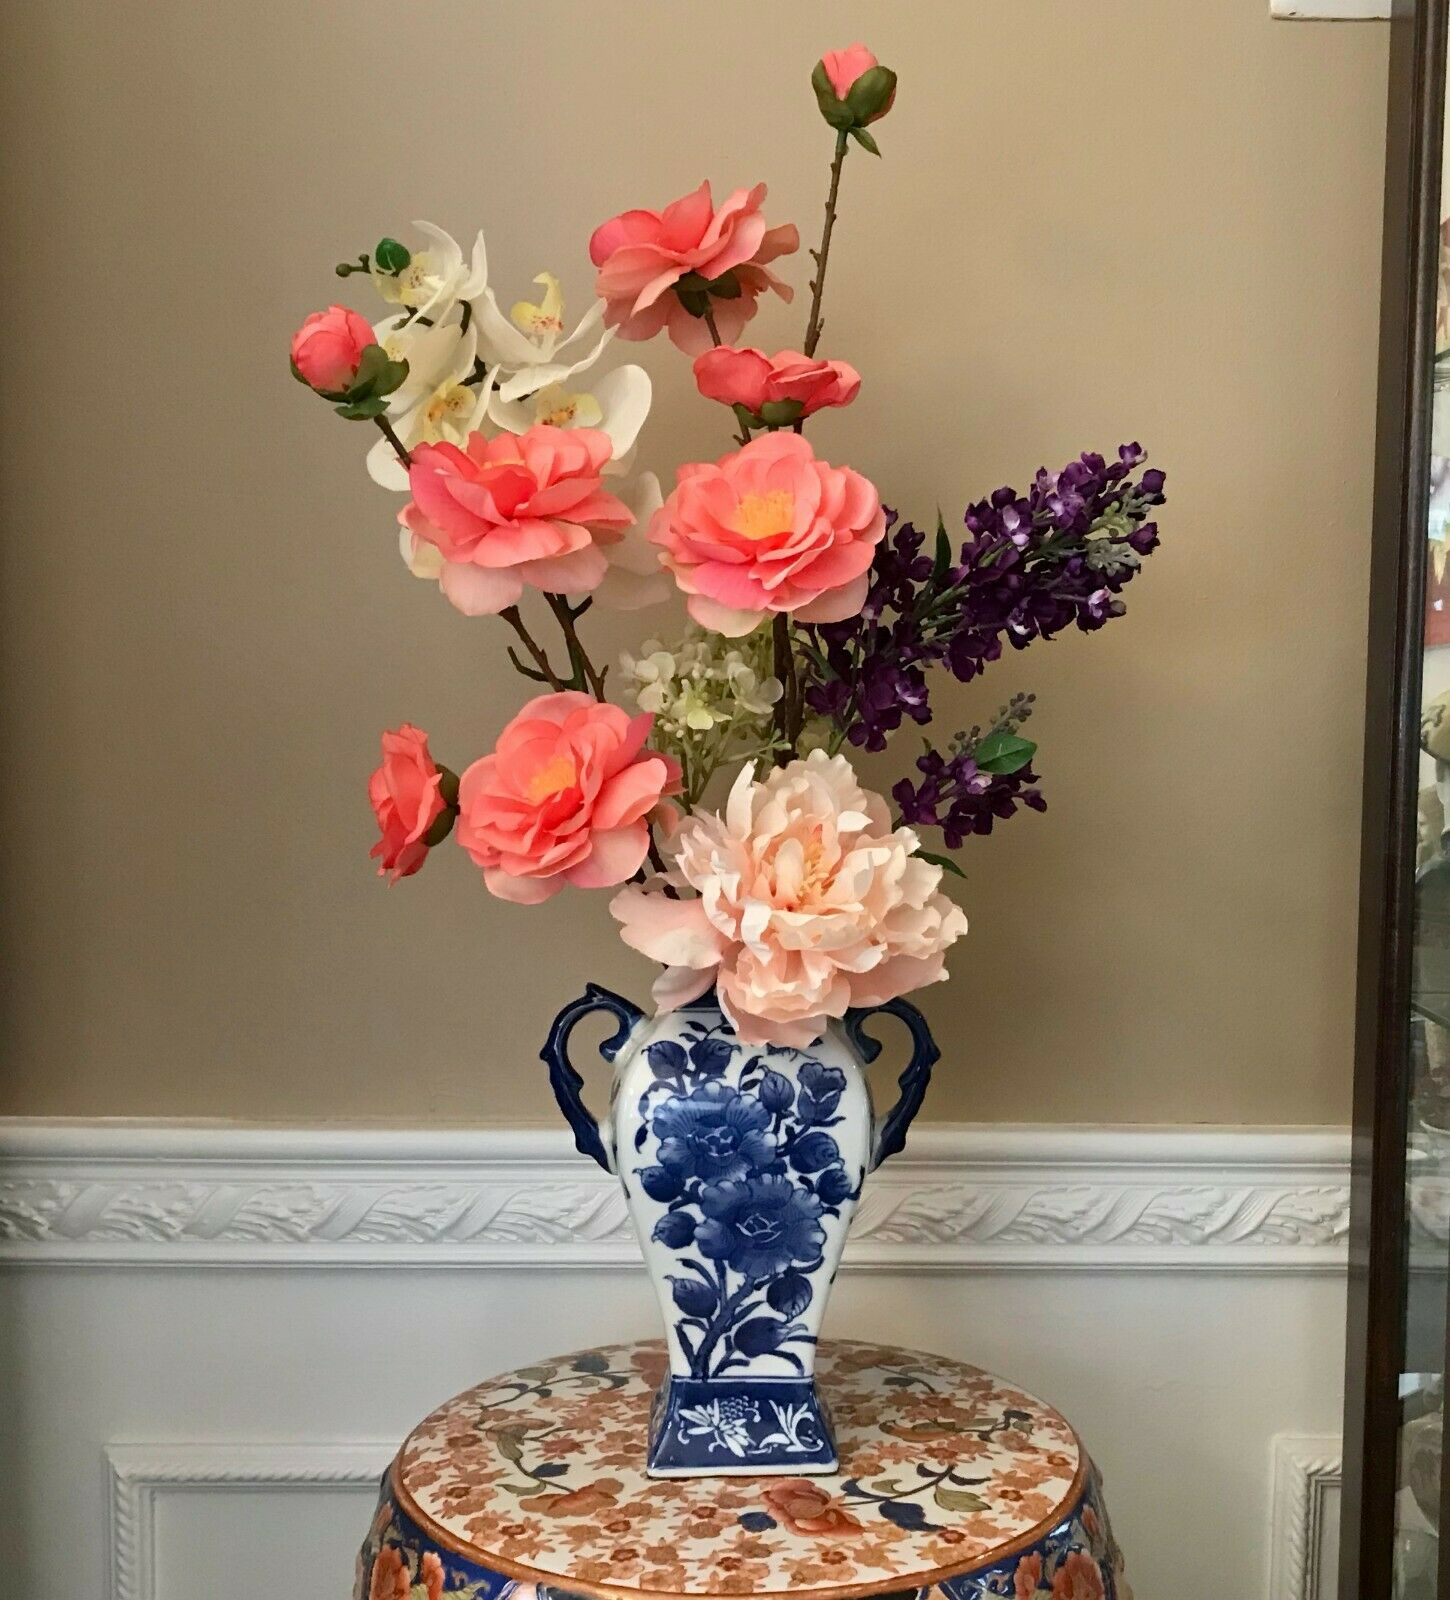 Floral Arrangement with Multi-ColGoldt Silk Flowers in a Blau and Weiß Floral Va